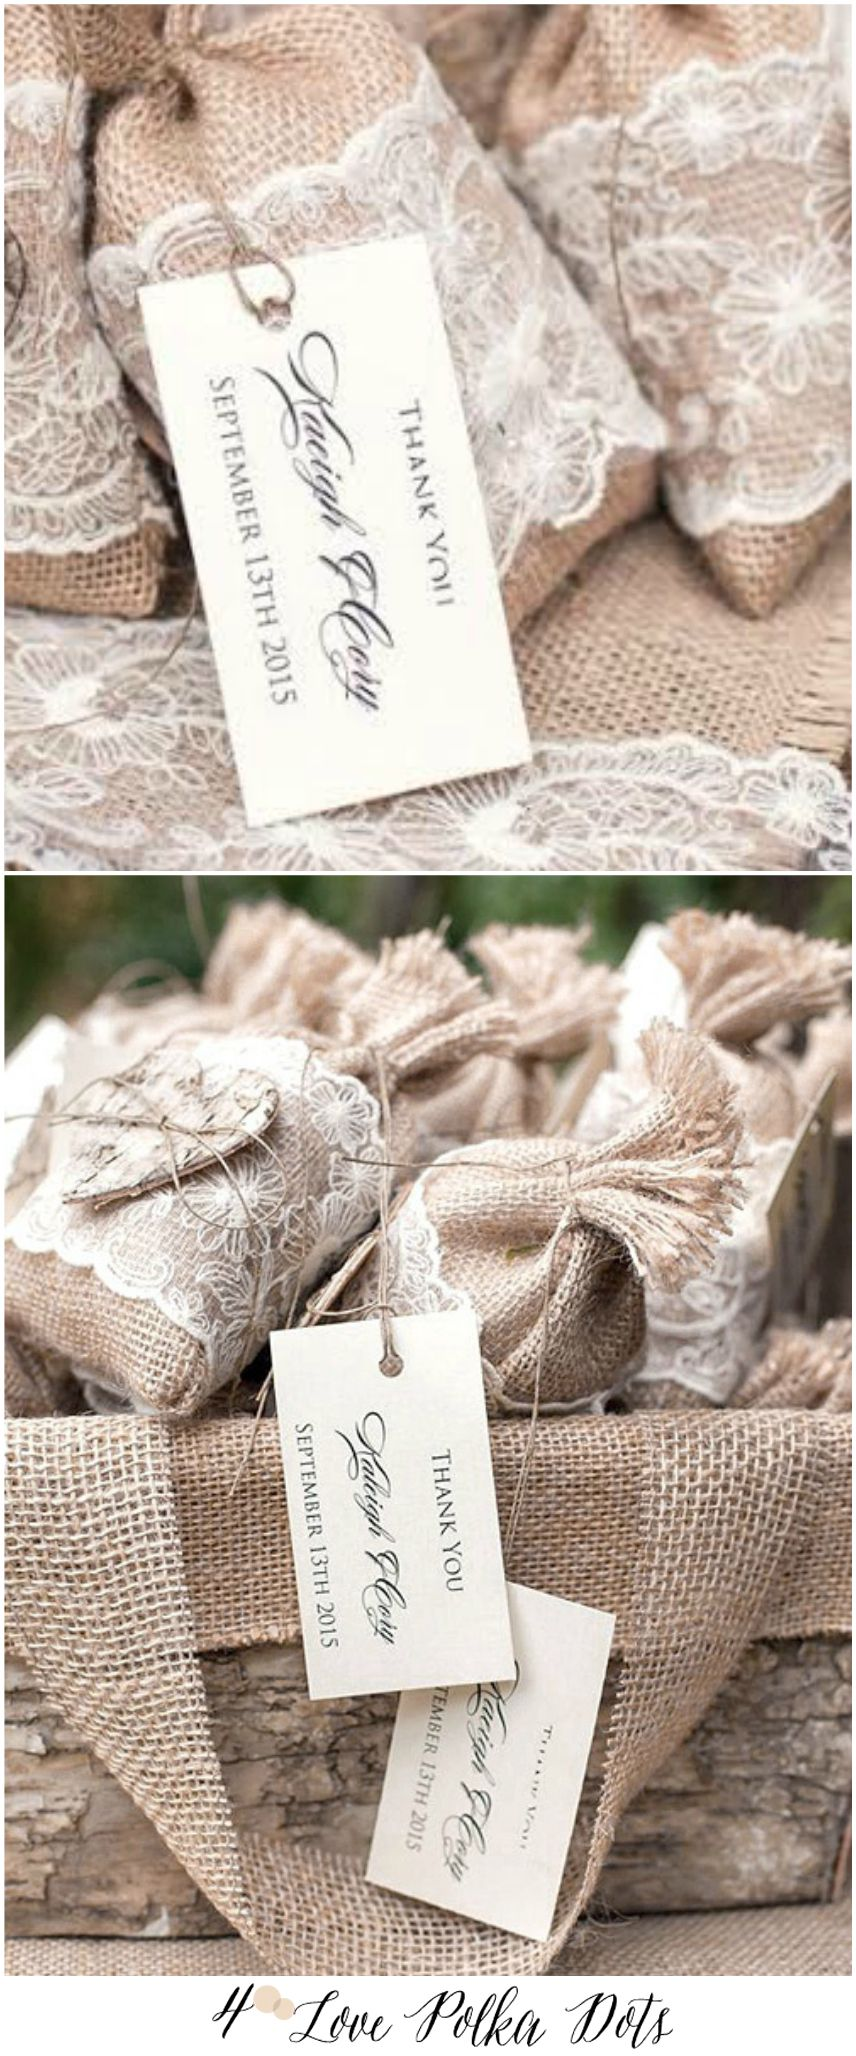 FAVOR BAGS & TAGS favor bags | Wedding favor bags, Burlap lace and ...